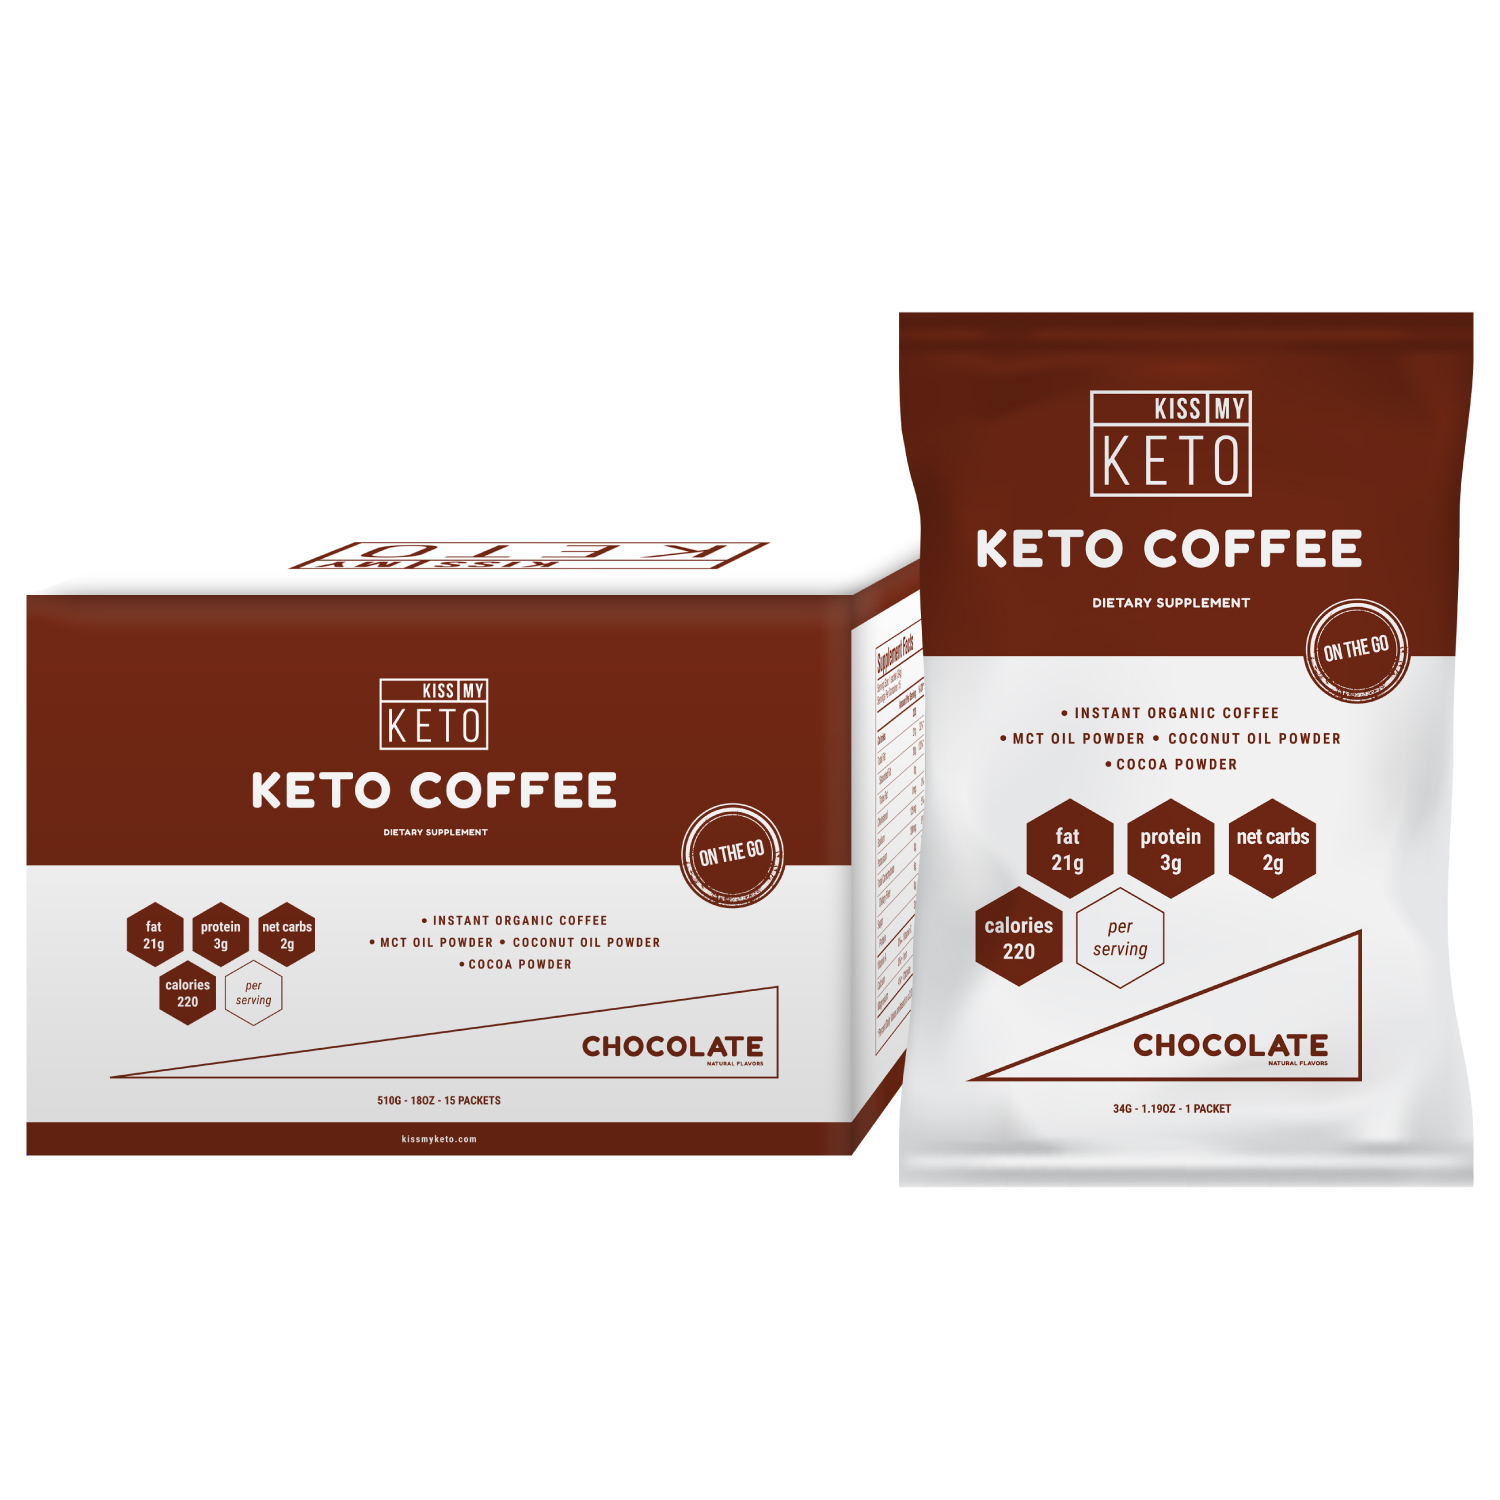 CHOCOLATE KETO COFFEE DIETARY SUPPLEMENT   The Natural Products